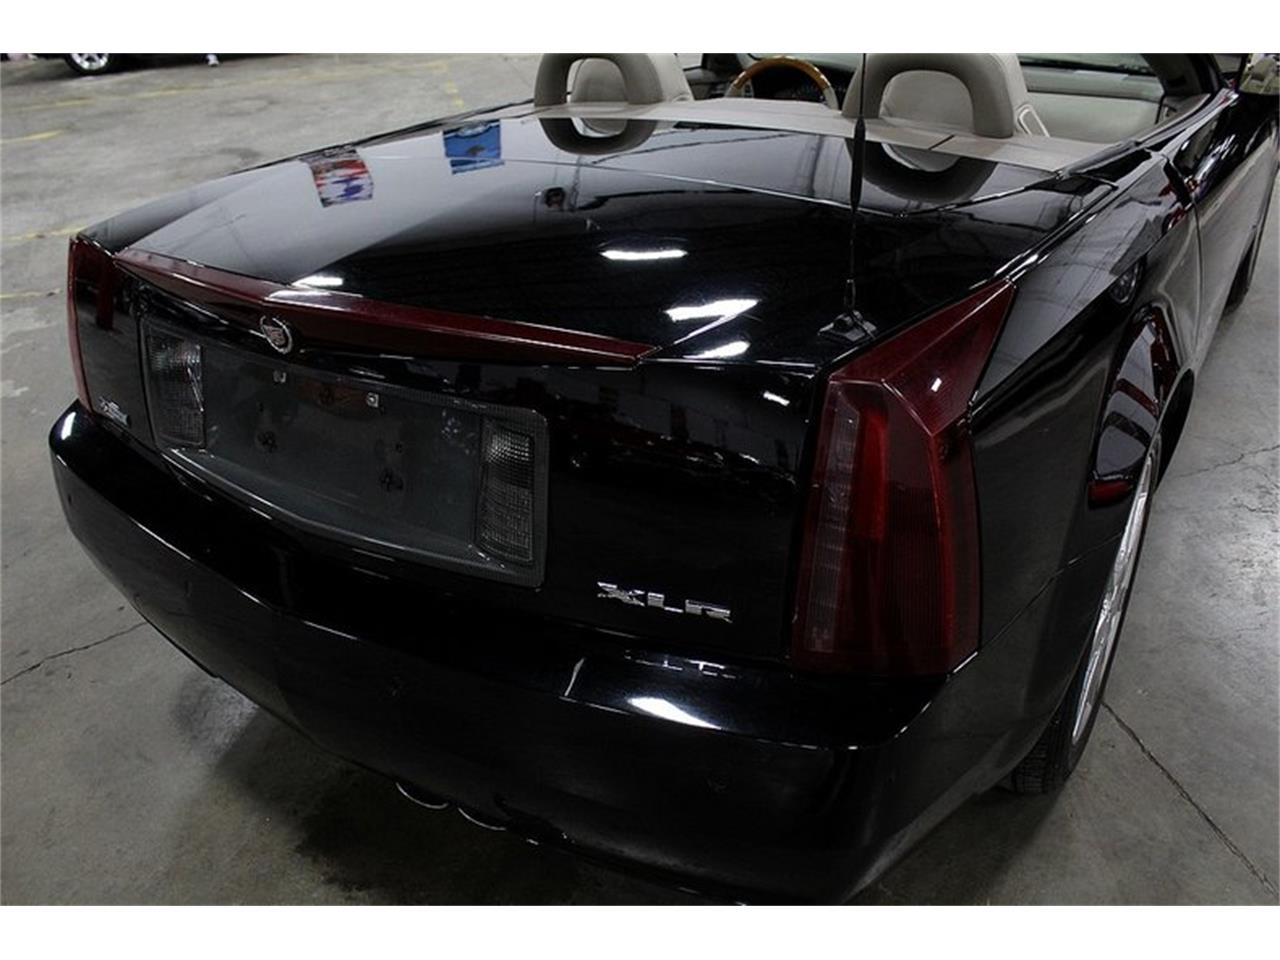 2004 Cadillac XLR for sale in Kentwood, MI – photo 11